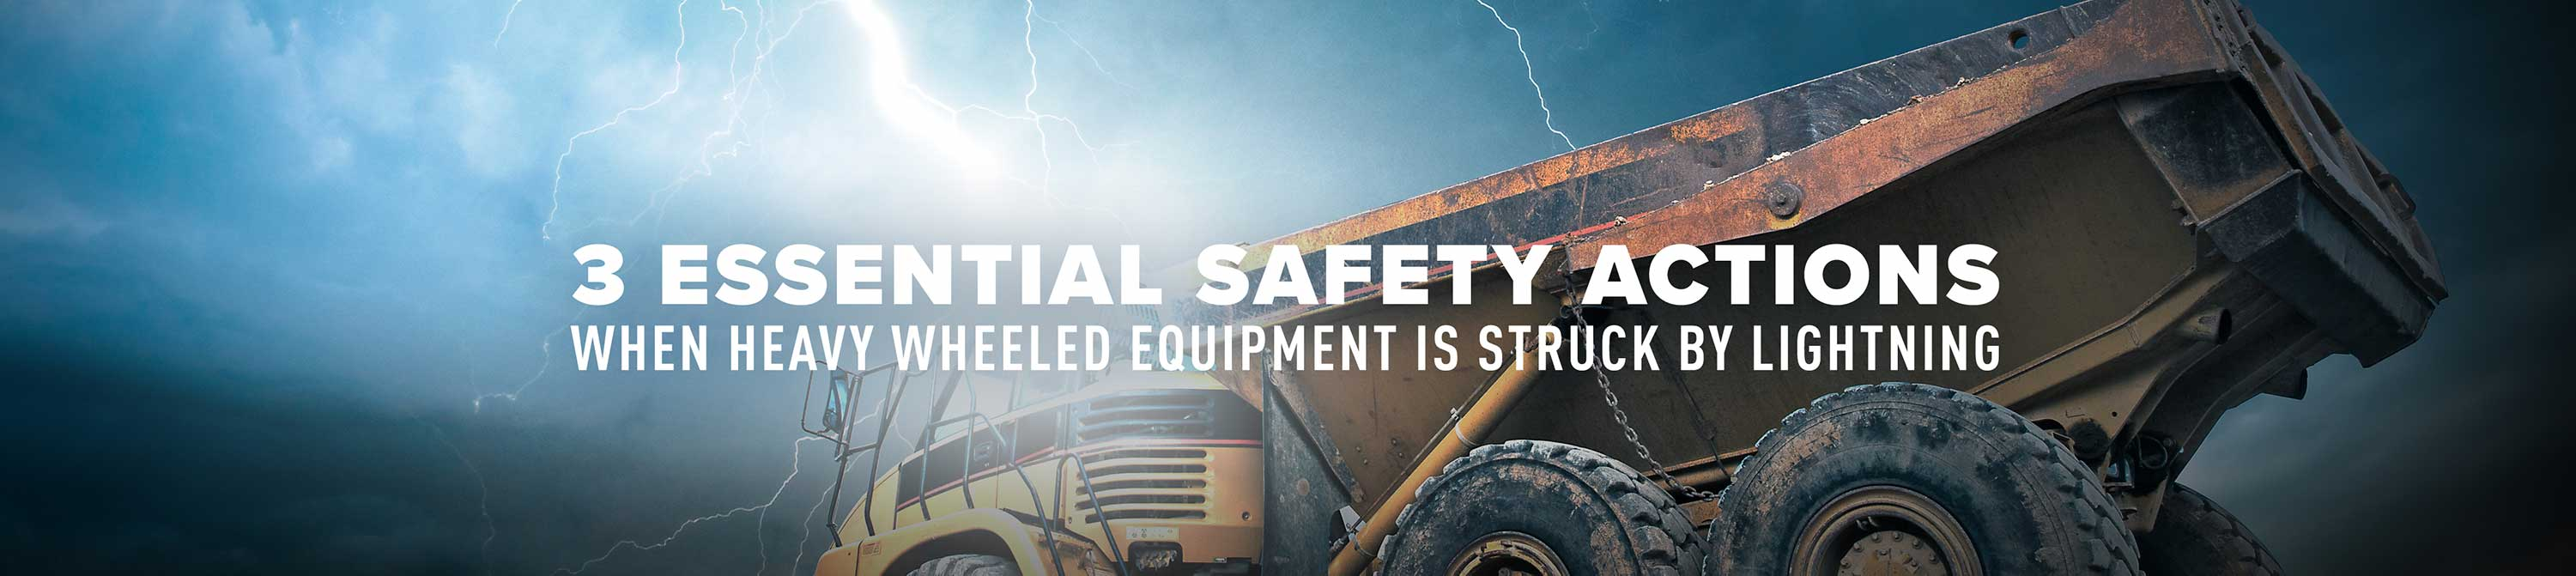 3 Essential Safety Actions